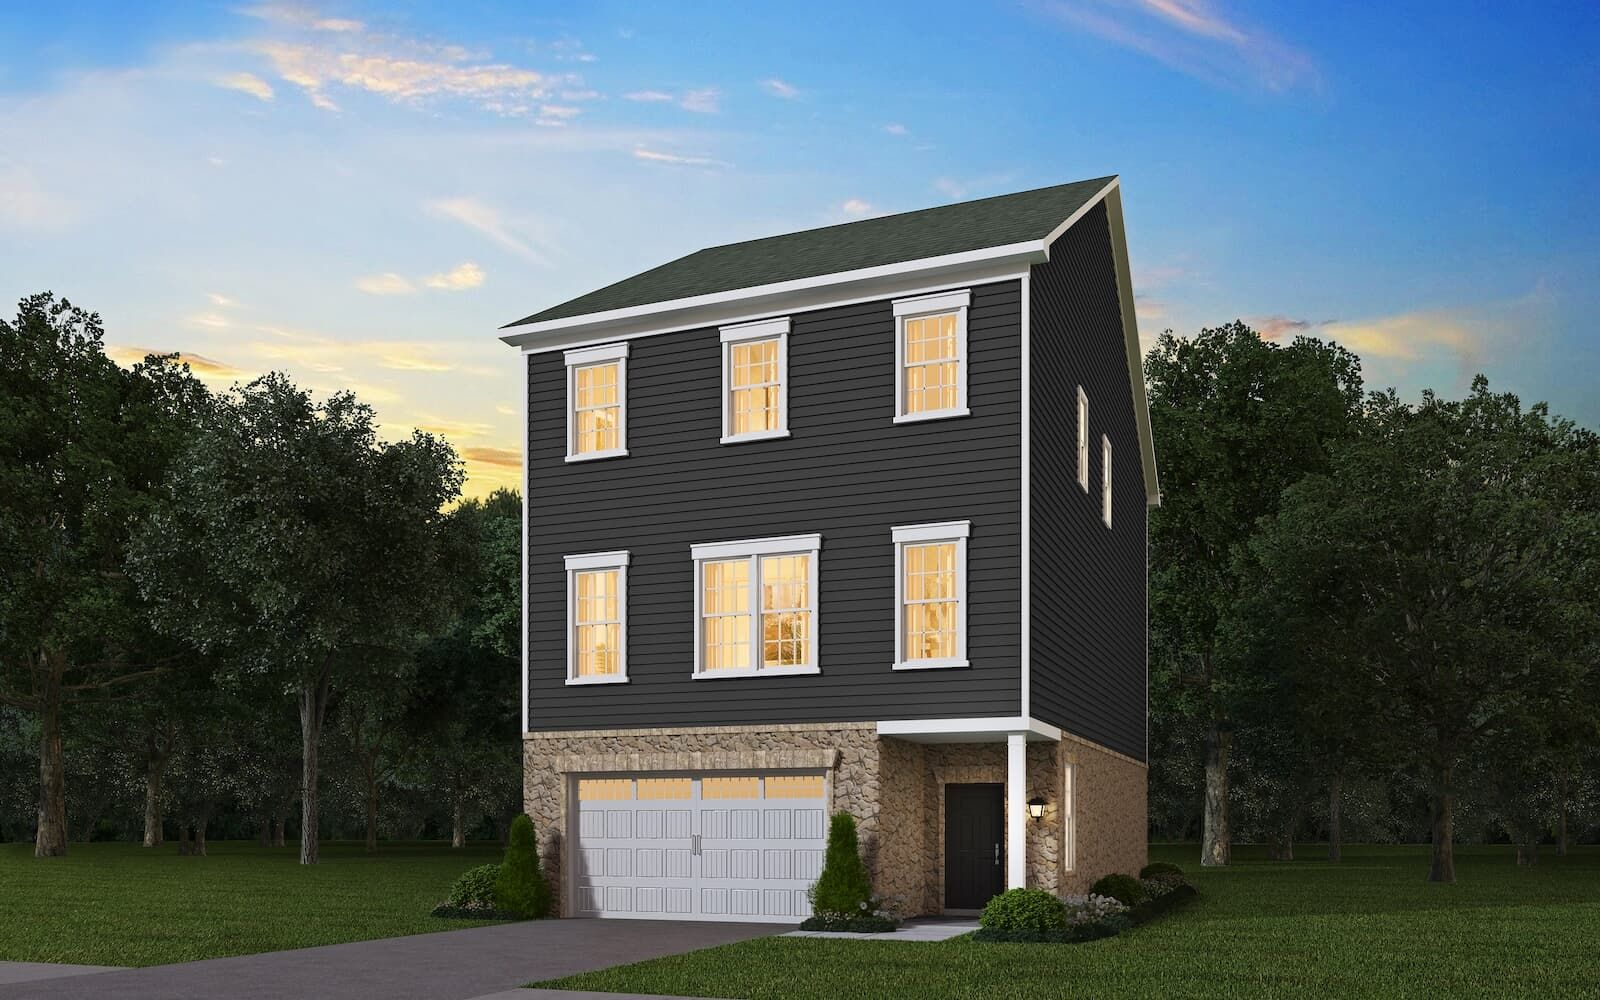 Exterior:Elevation 1 of the Flagstaff a home design by Brookfield Residential at Dowden s Station in Clarksburg MD